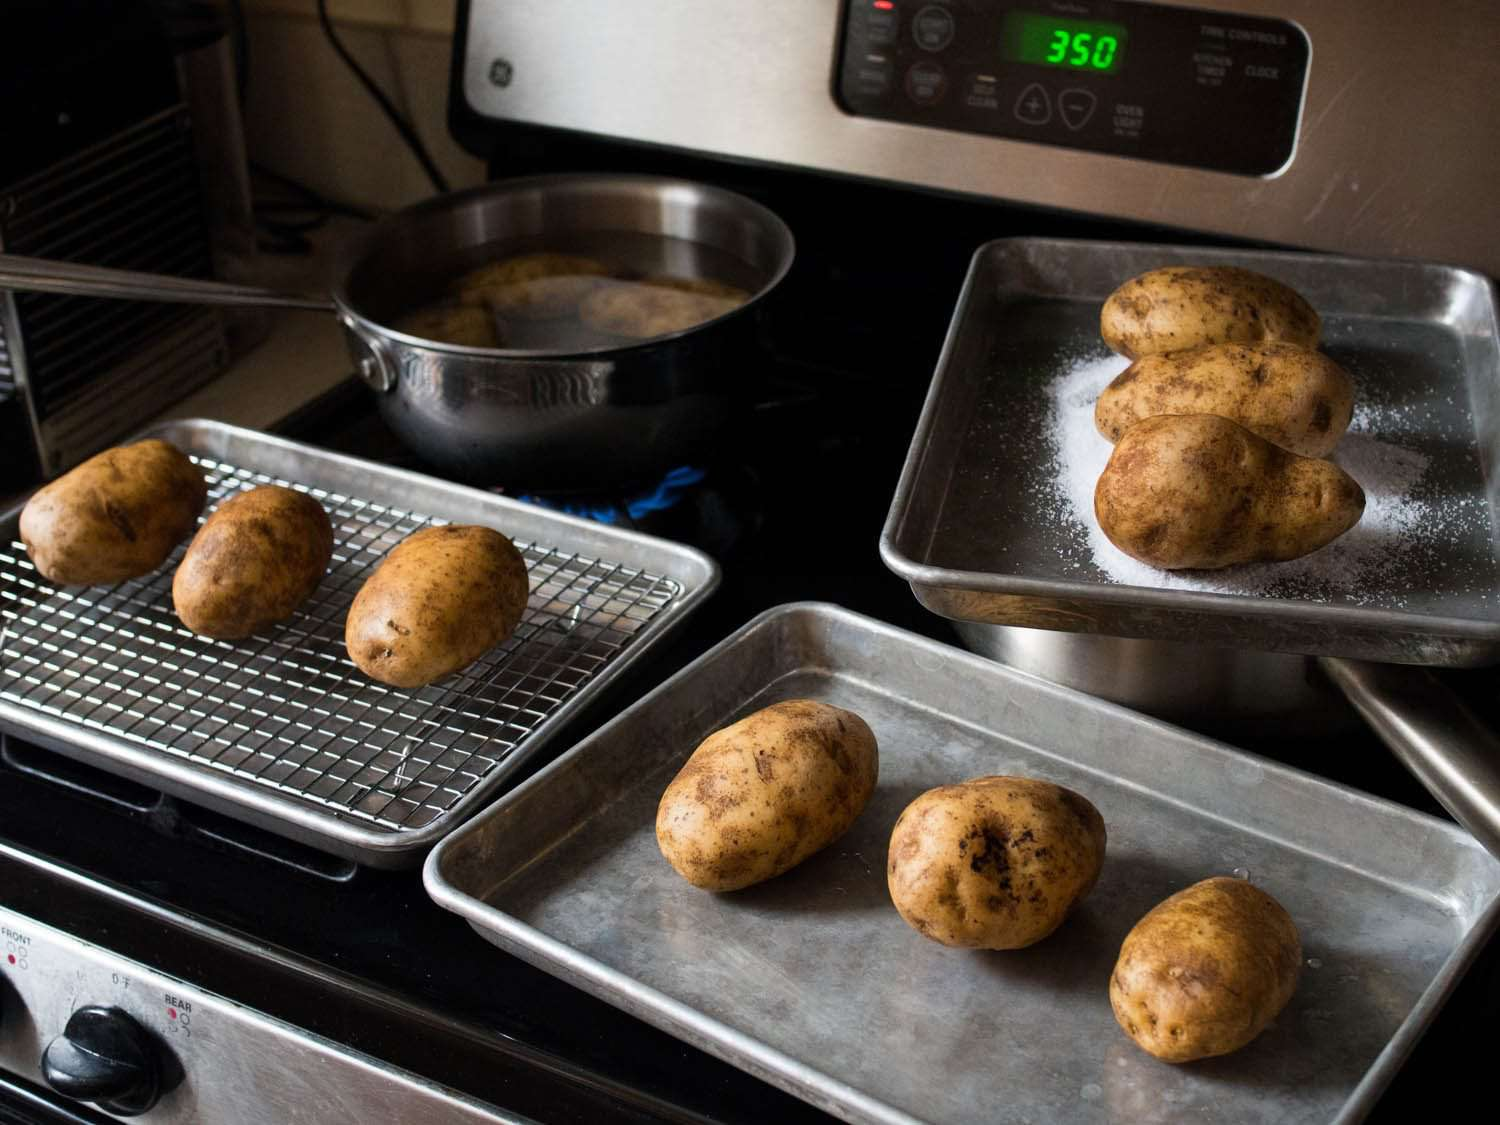 Three pans and one pot full of potatoes on a stovetop.